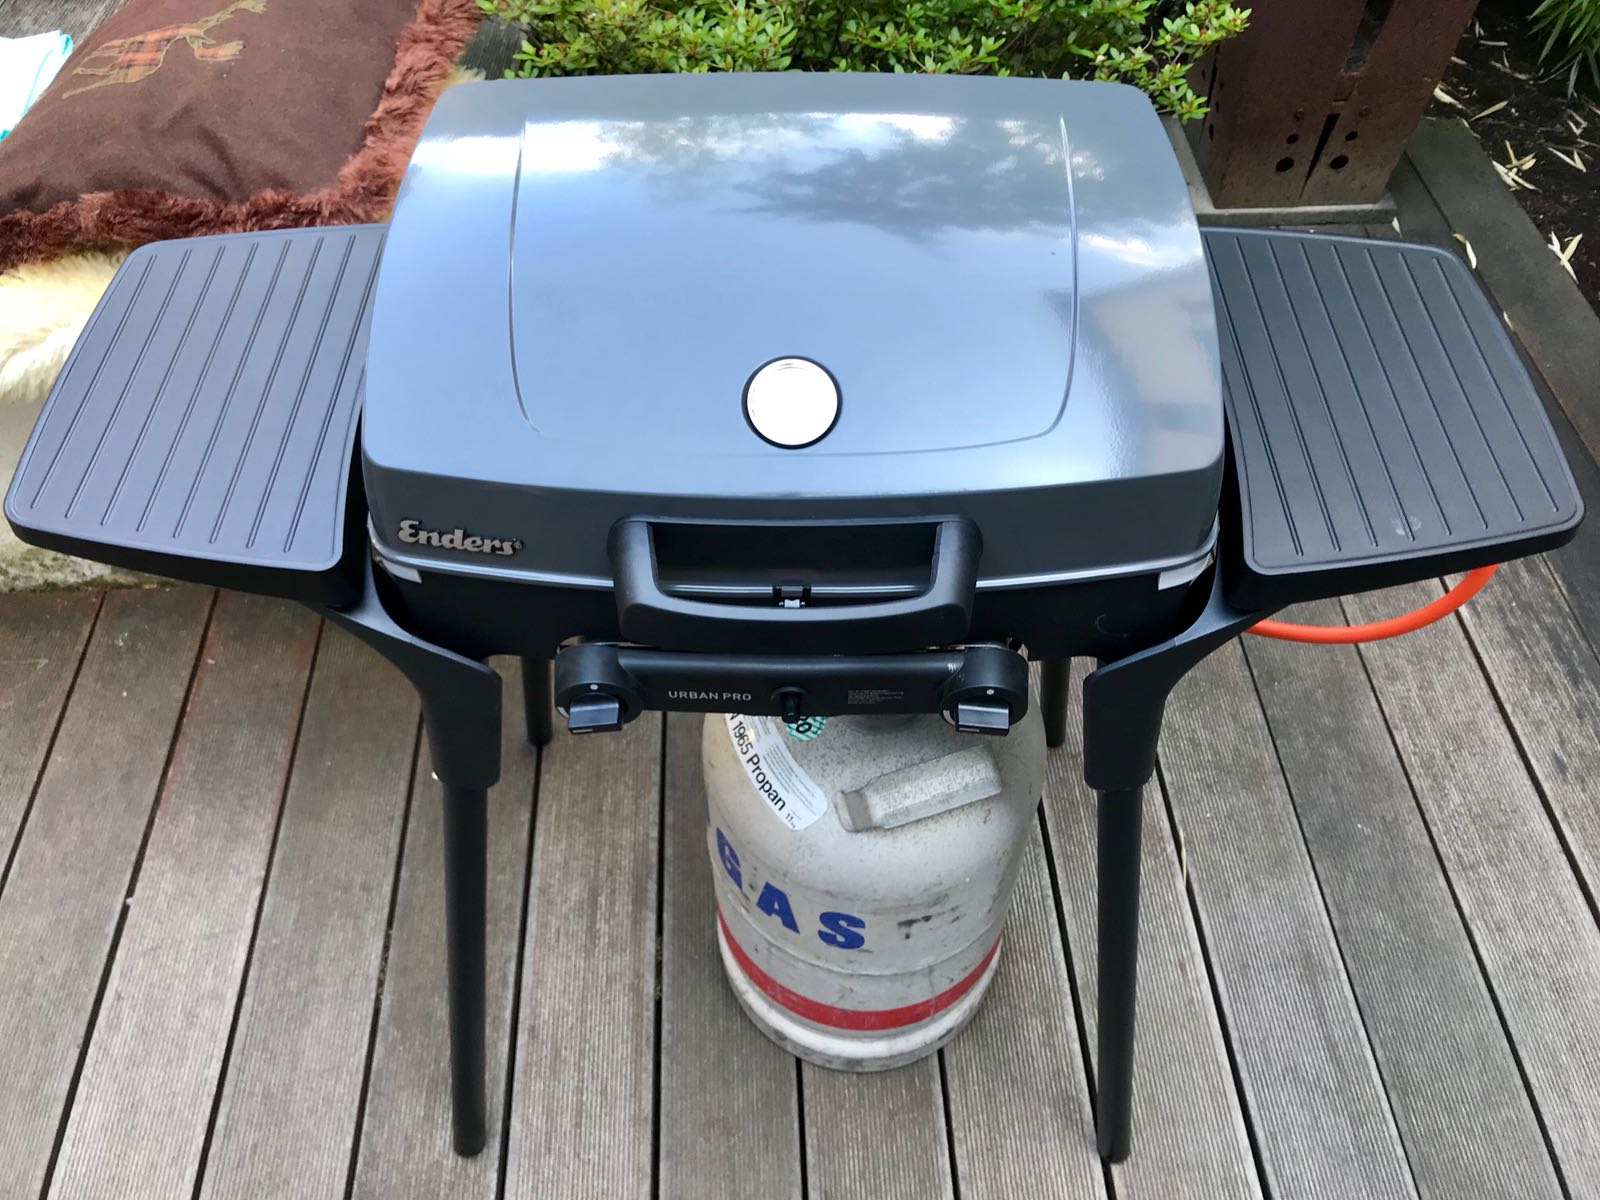 Enders Gasgrill Camping : 2 in 1: gasgrill und kocher unser neuer enders urban vario pro